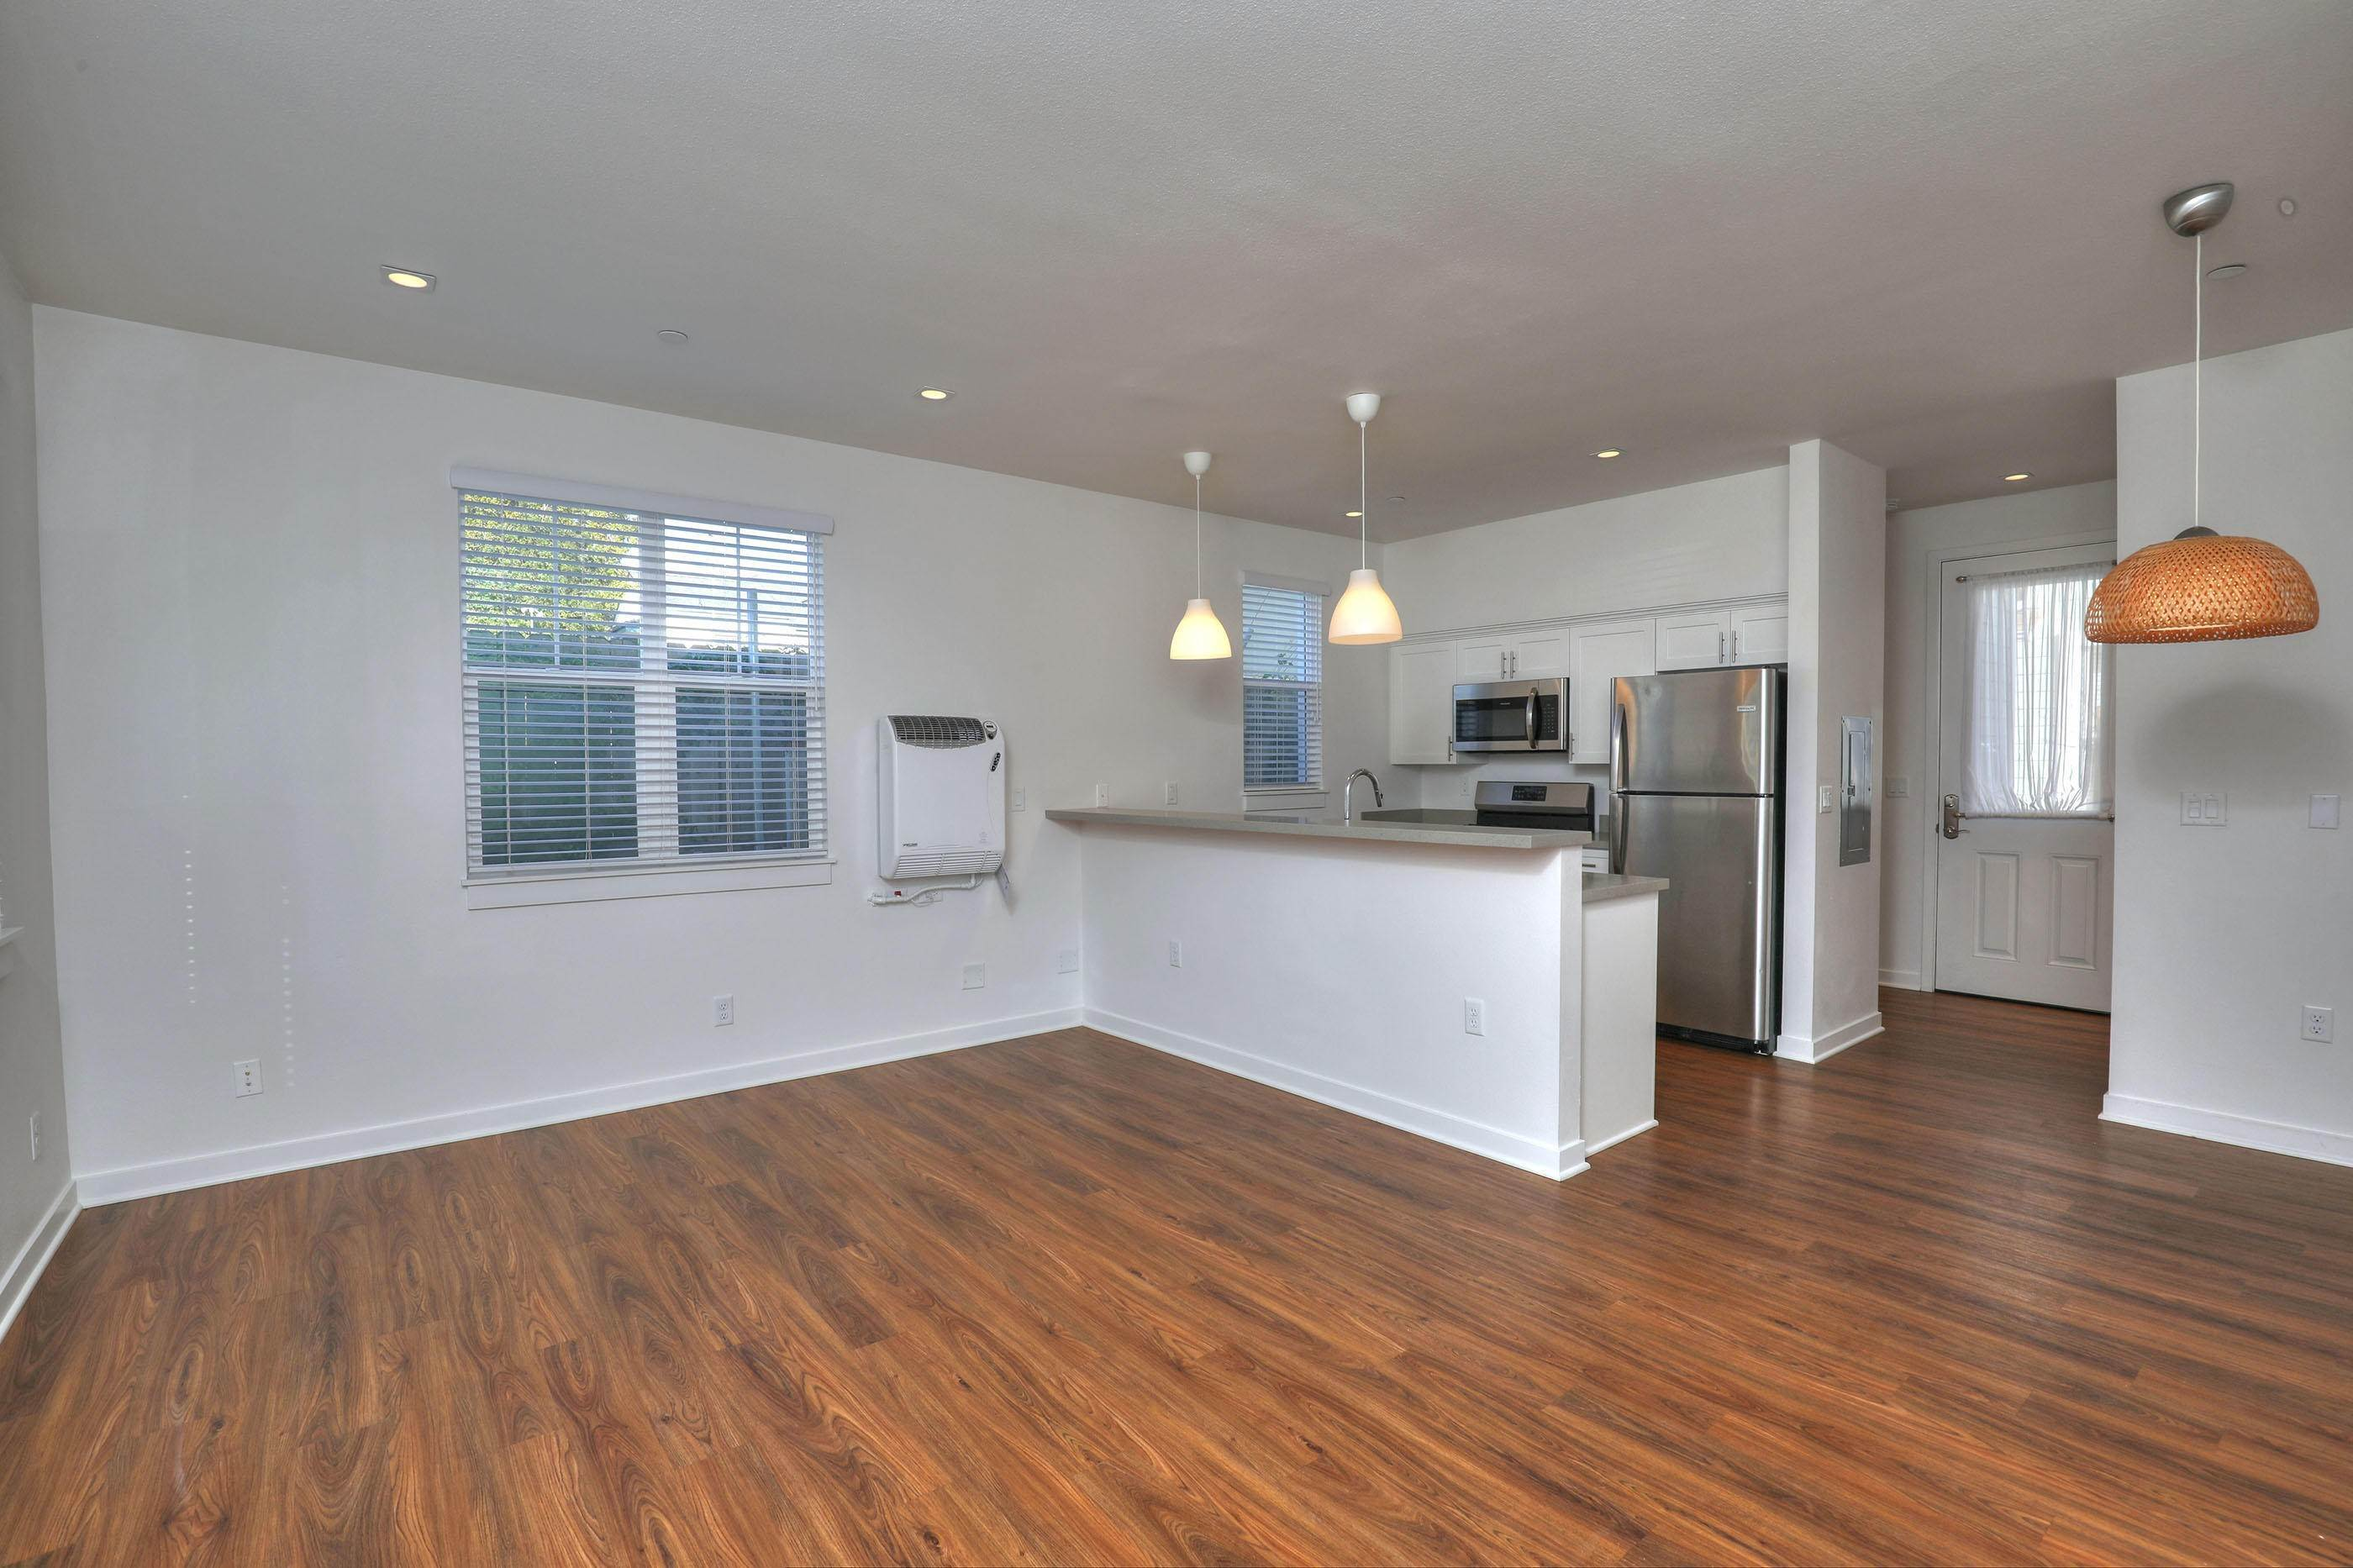 3. Apartments at 318 W Micheltorena Street Santa Barbara, California 93101 United States